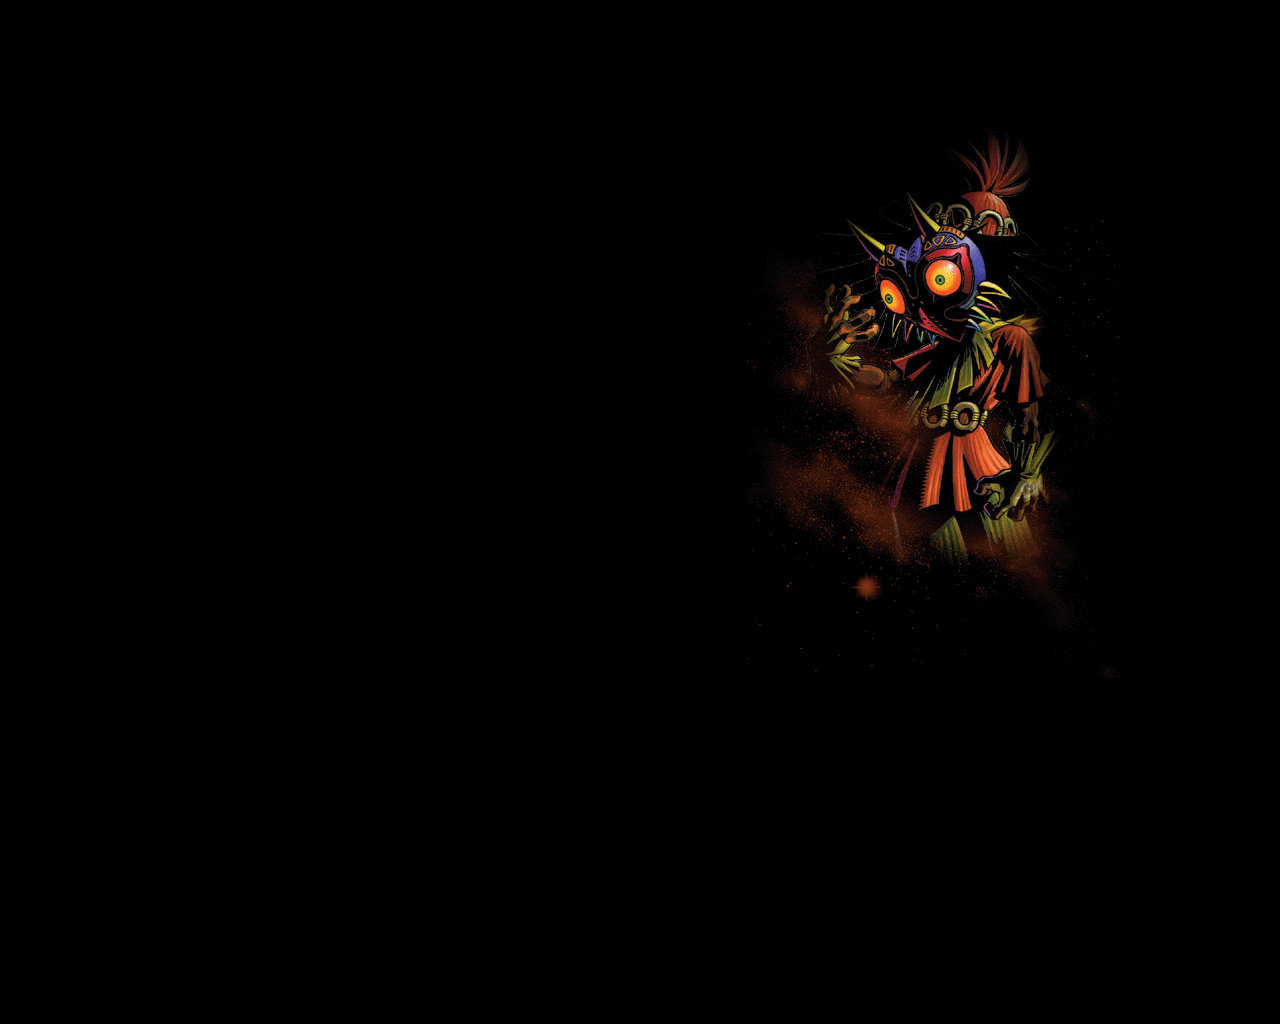 High Resolution The Legend Of Zelda Hd 1280x1024 Wallpaper